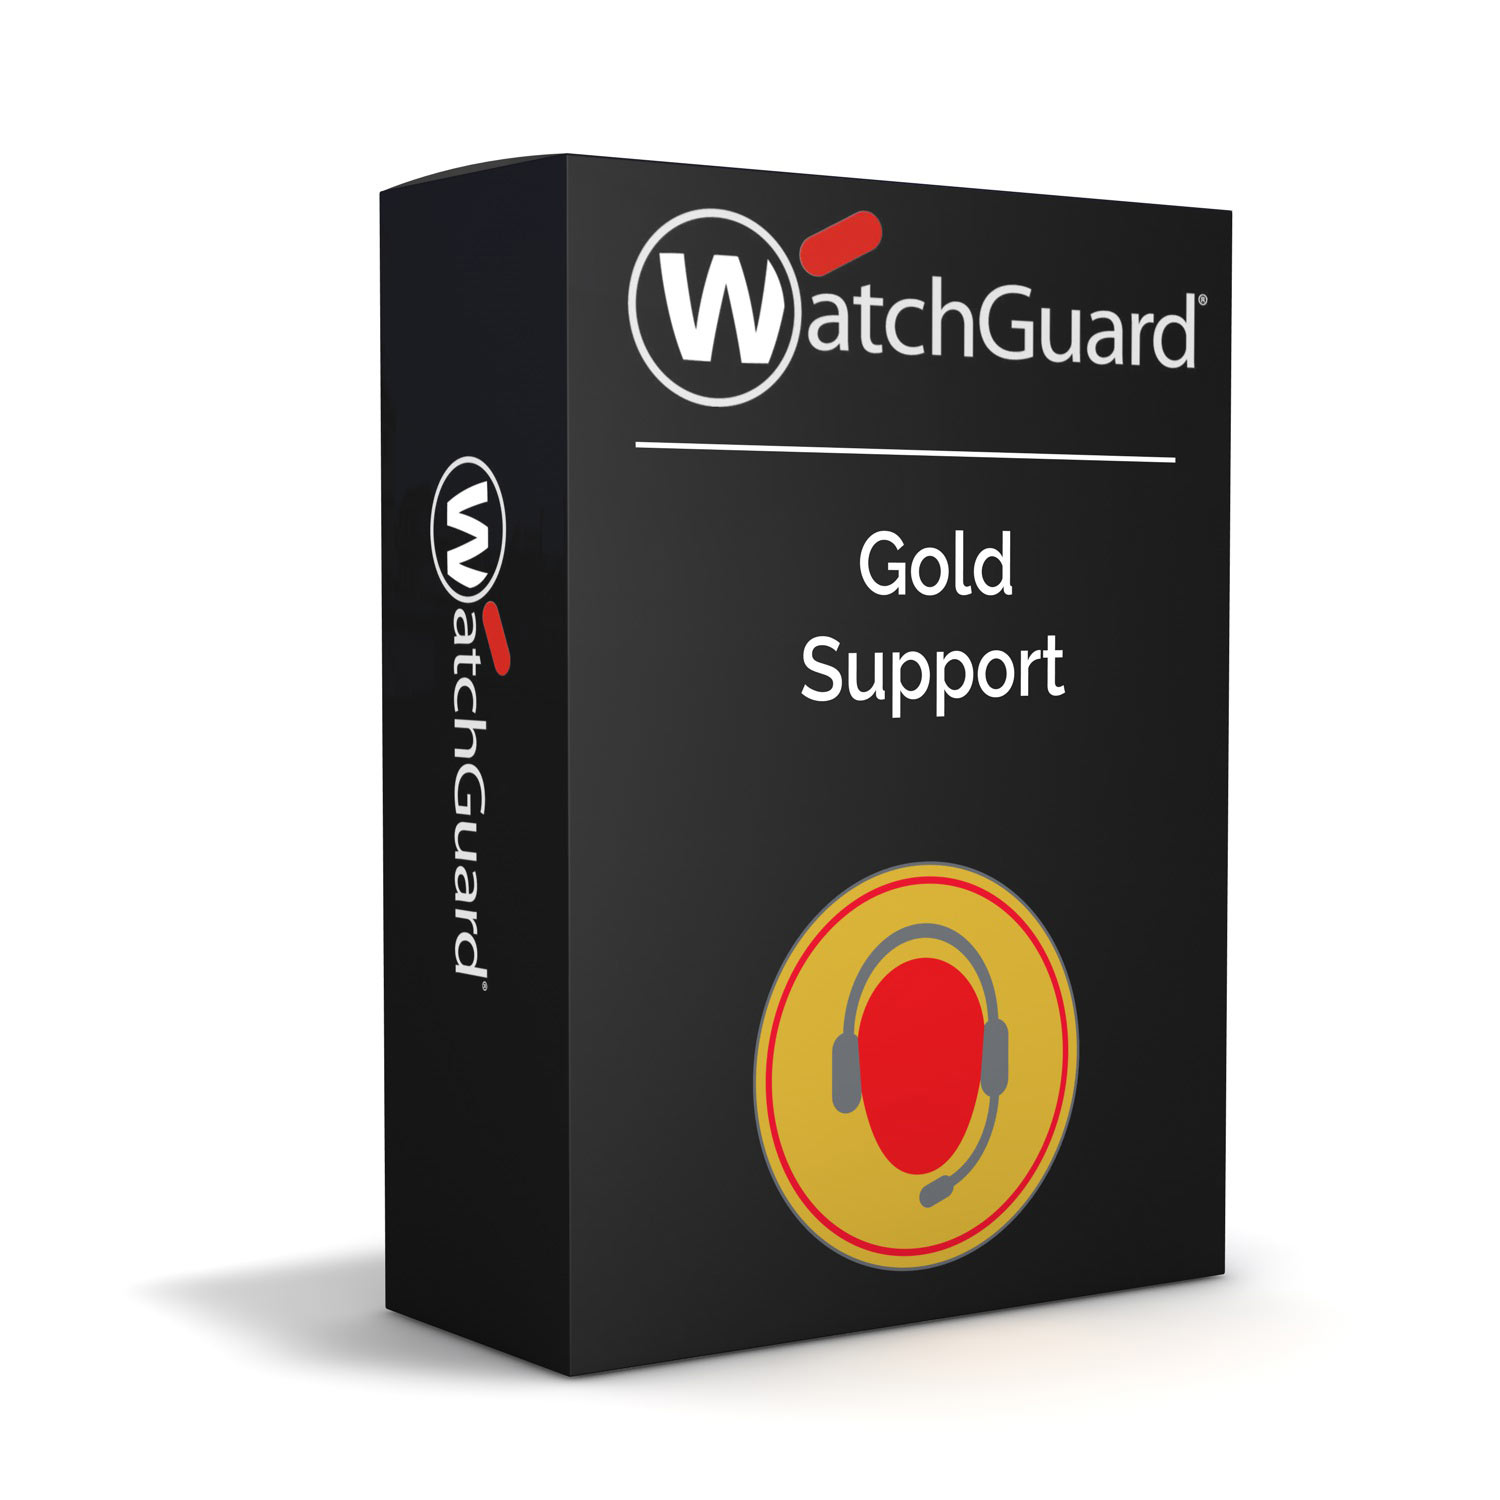 WatchGuard Gold Support Renewal/Upgrade 1-yr for Firebox T35